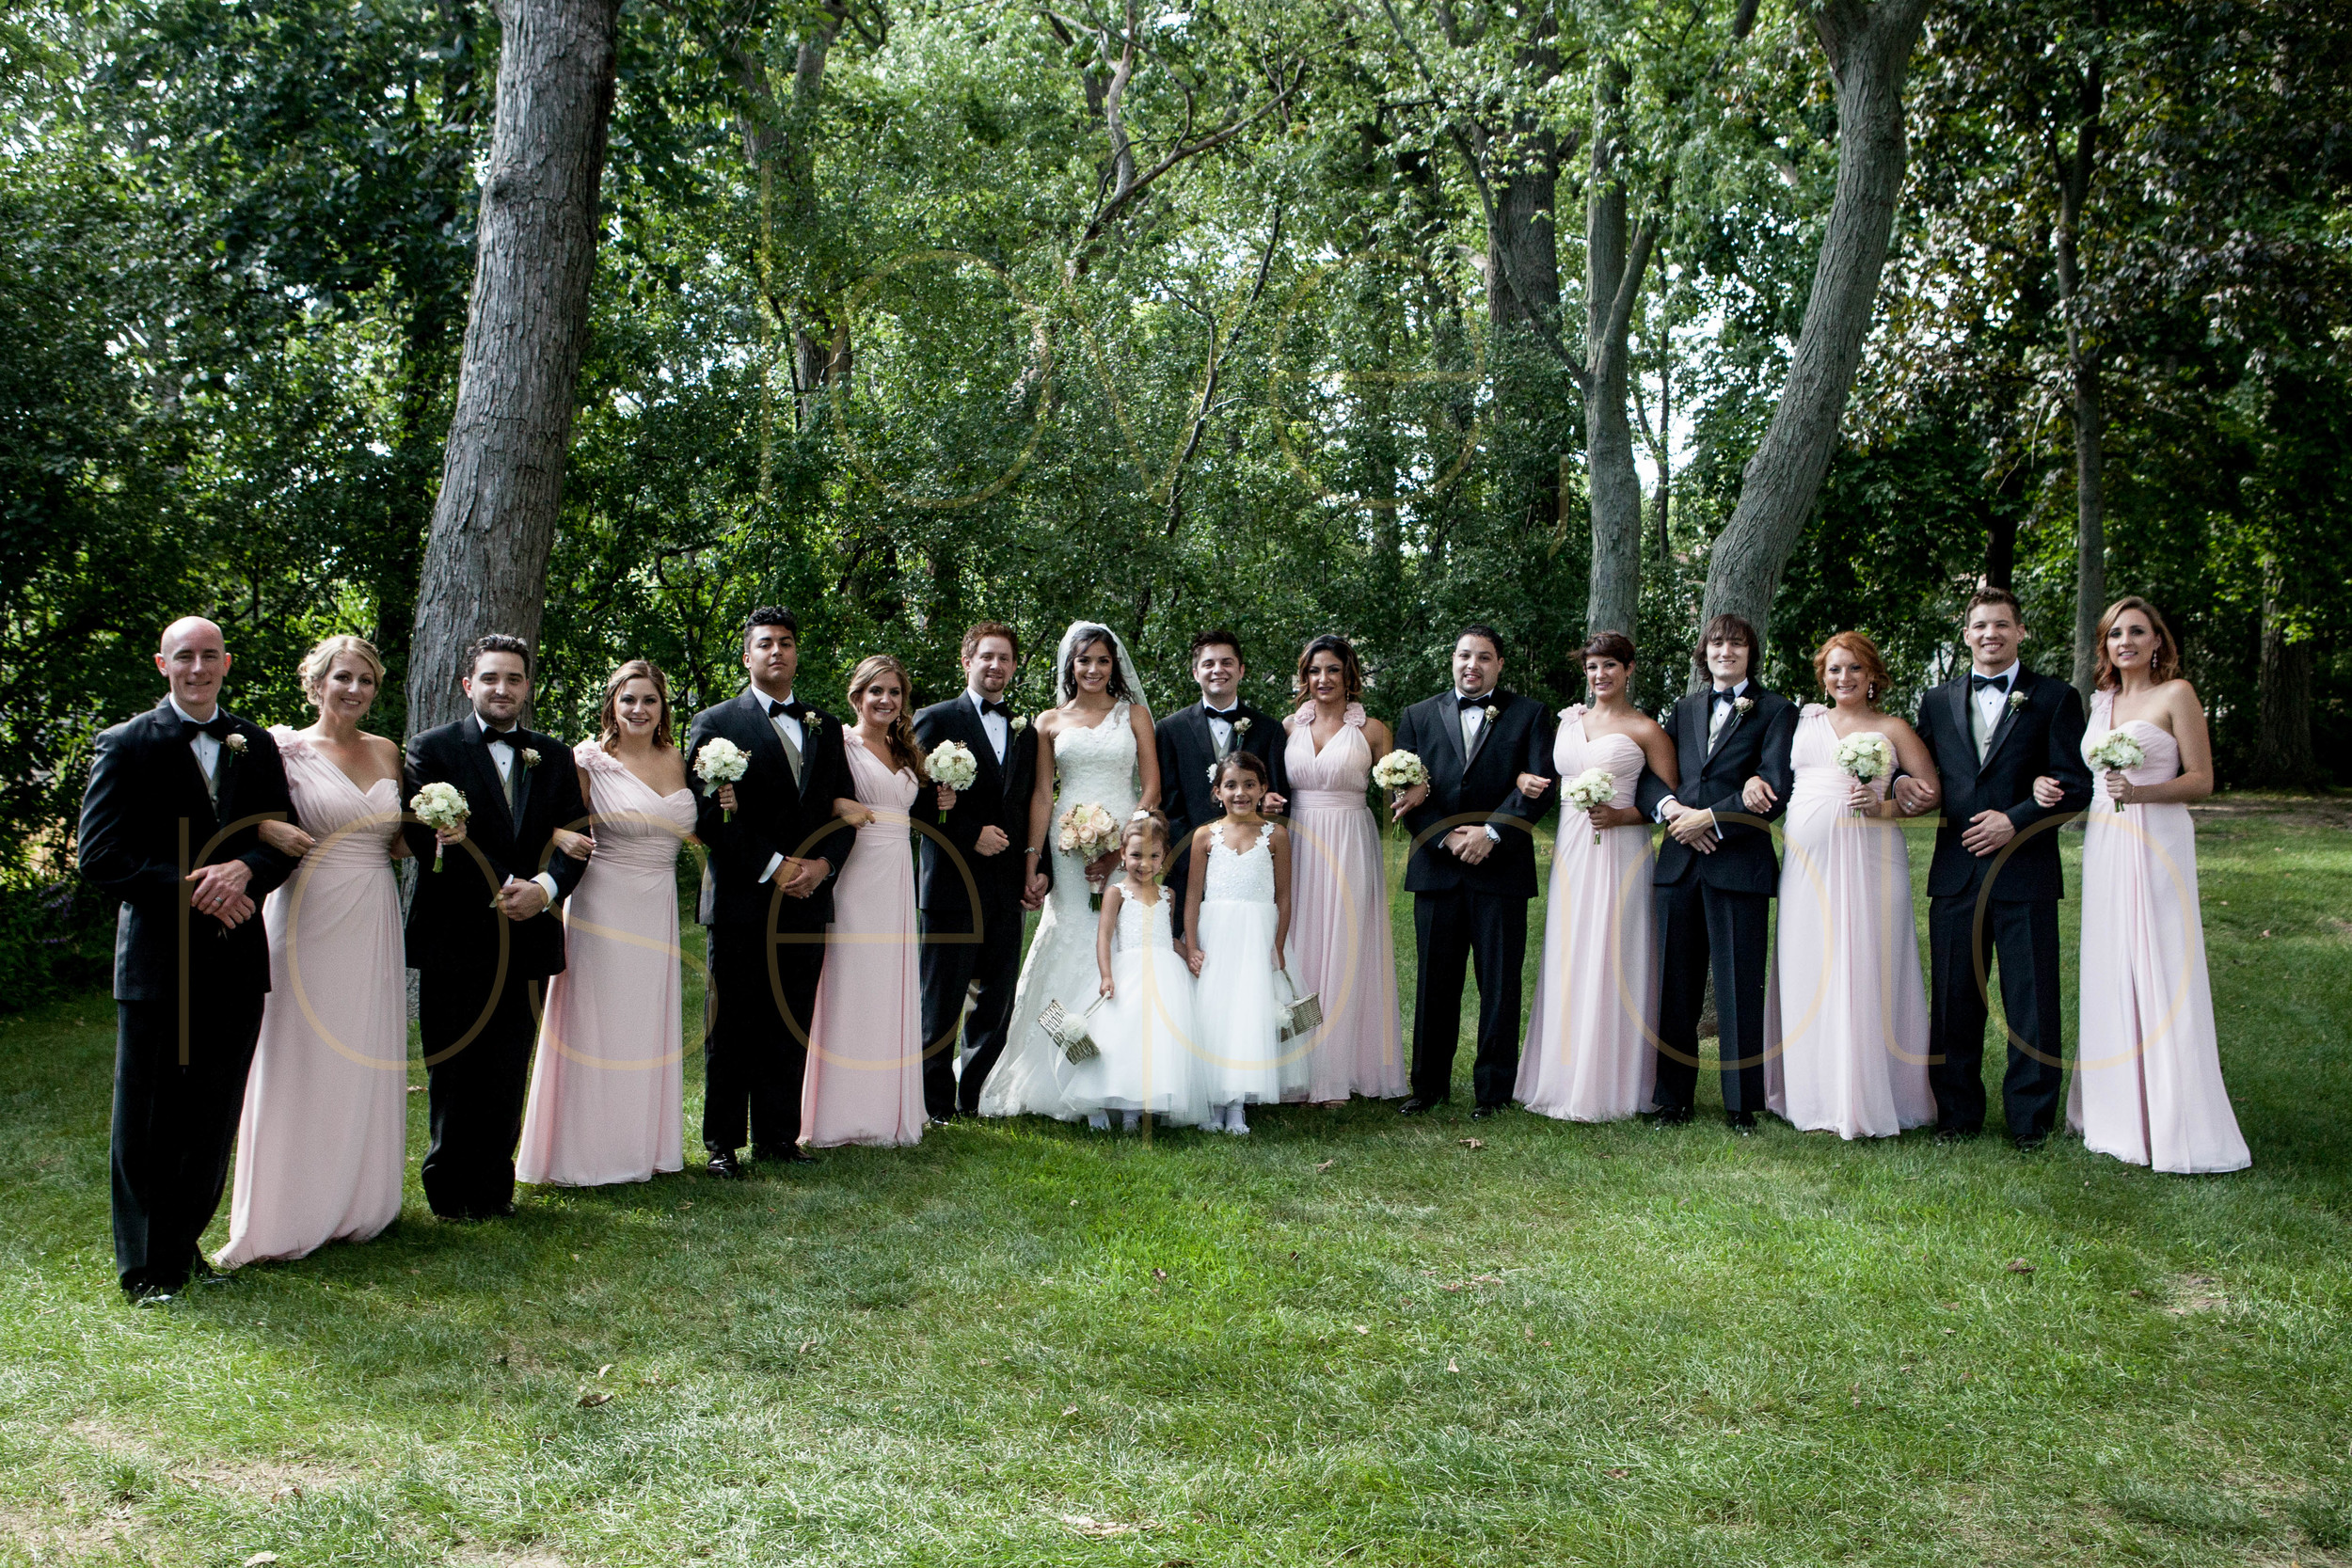 Claudia + Grant Heidel House Wiscon lake wedding best of chicago wedding photographers -25.jpg